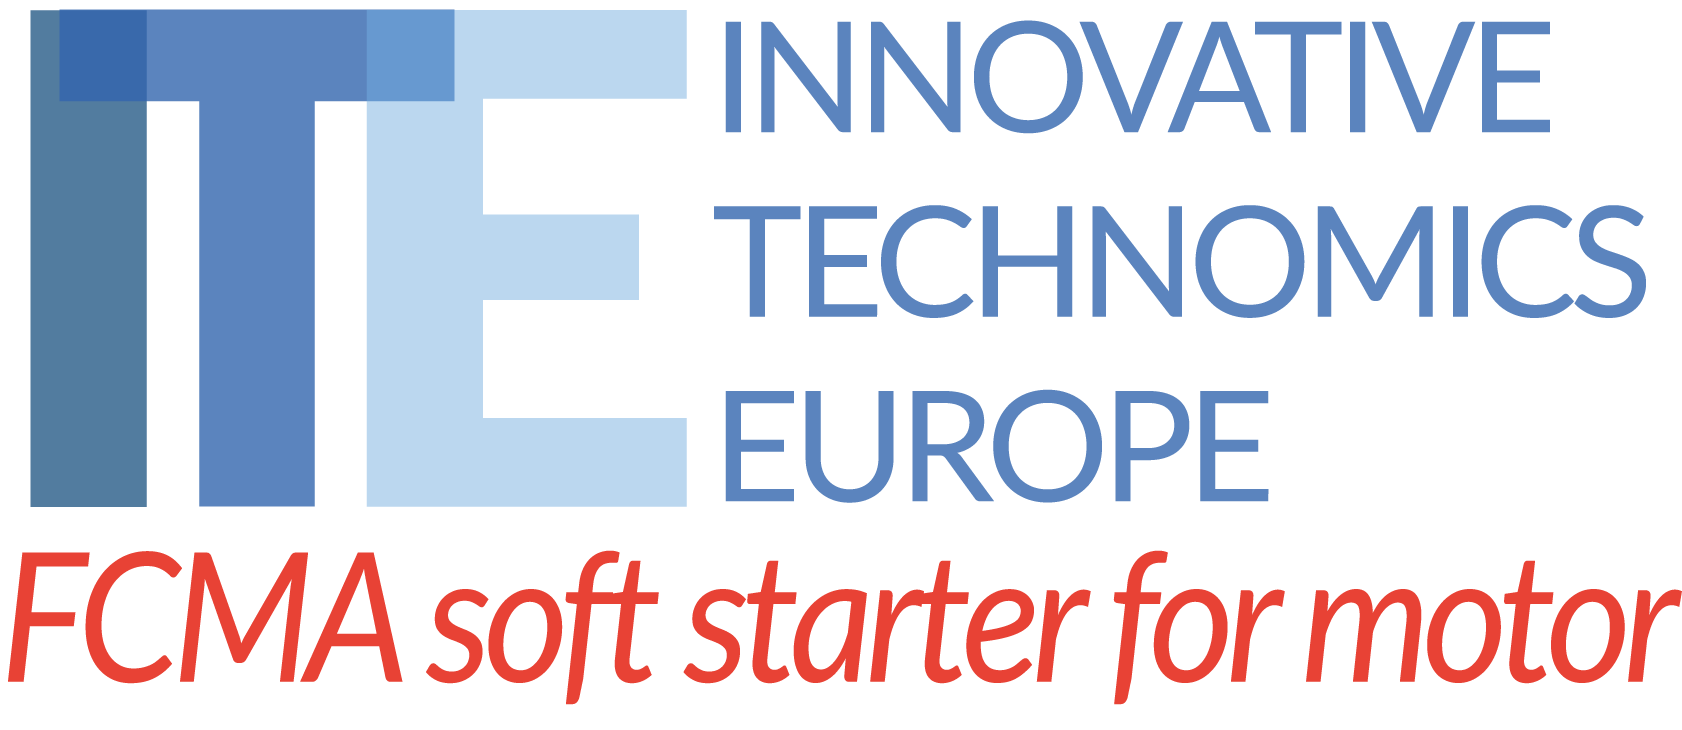 Innovative Technomics Europe